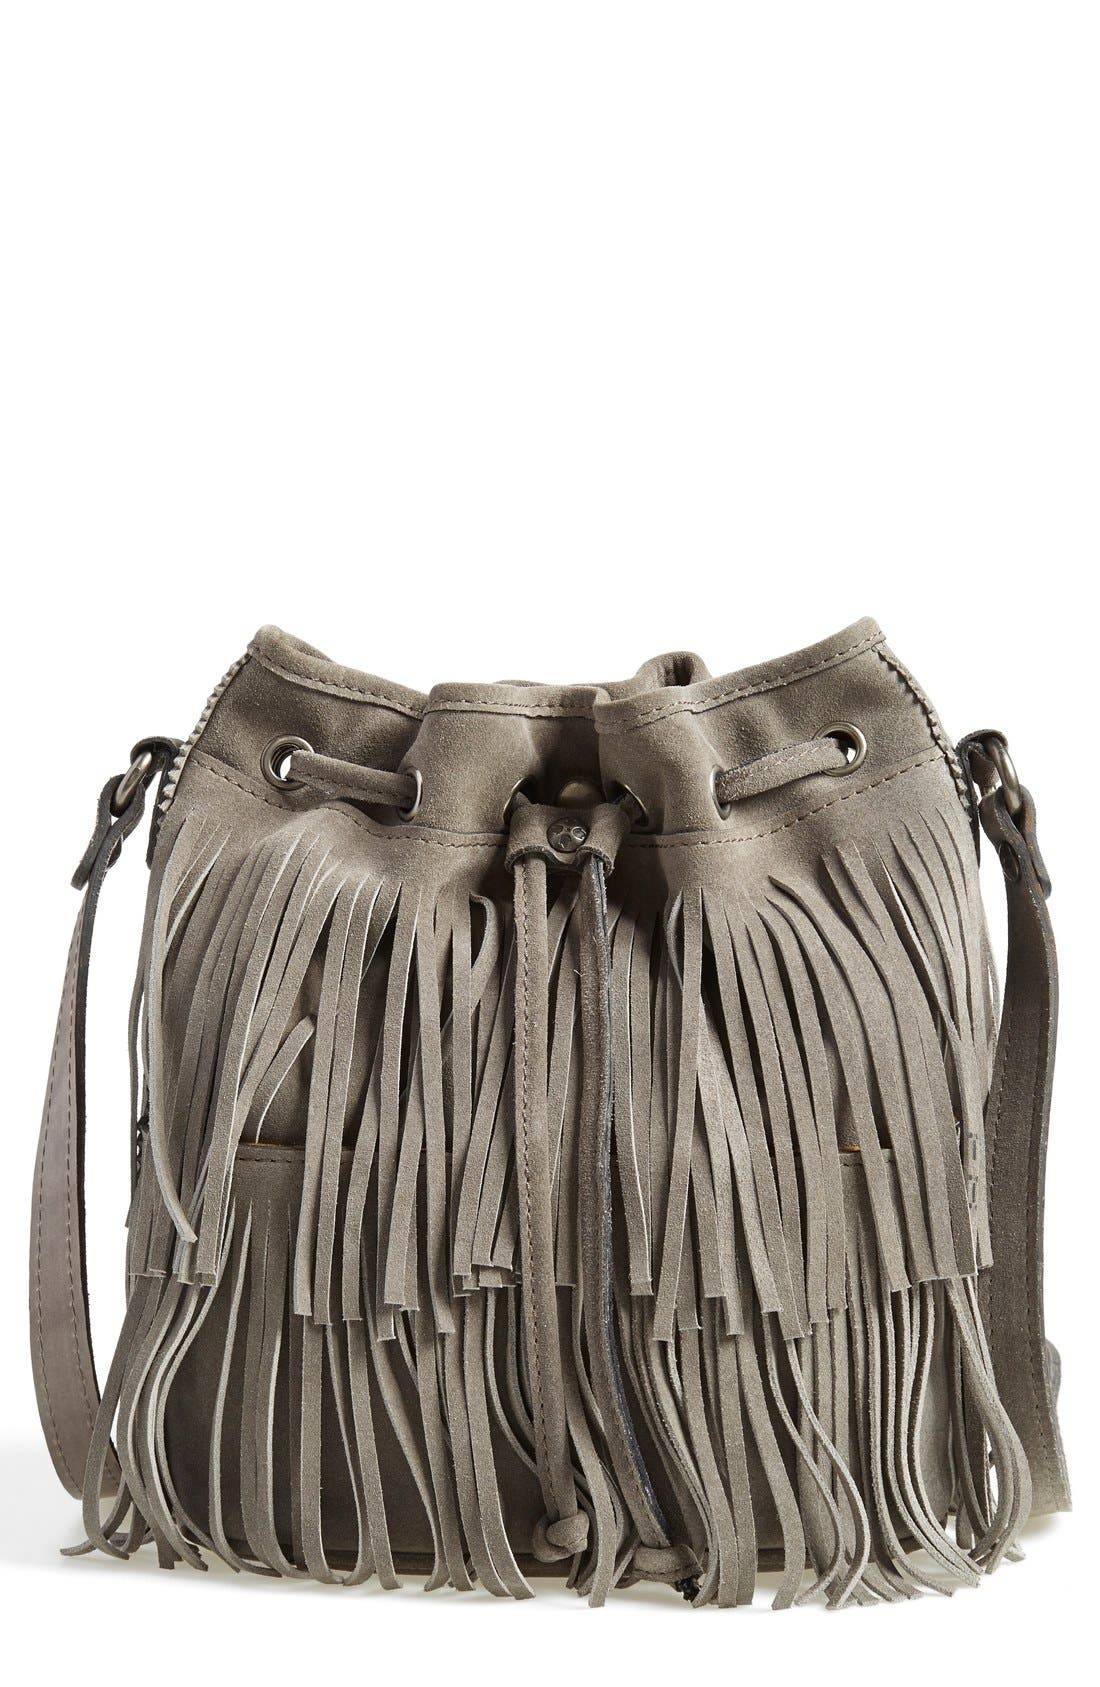 'Bronte' Fringe Bucket Bag,                             Alternate thumbnail 4, color,                             020